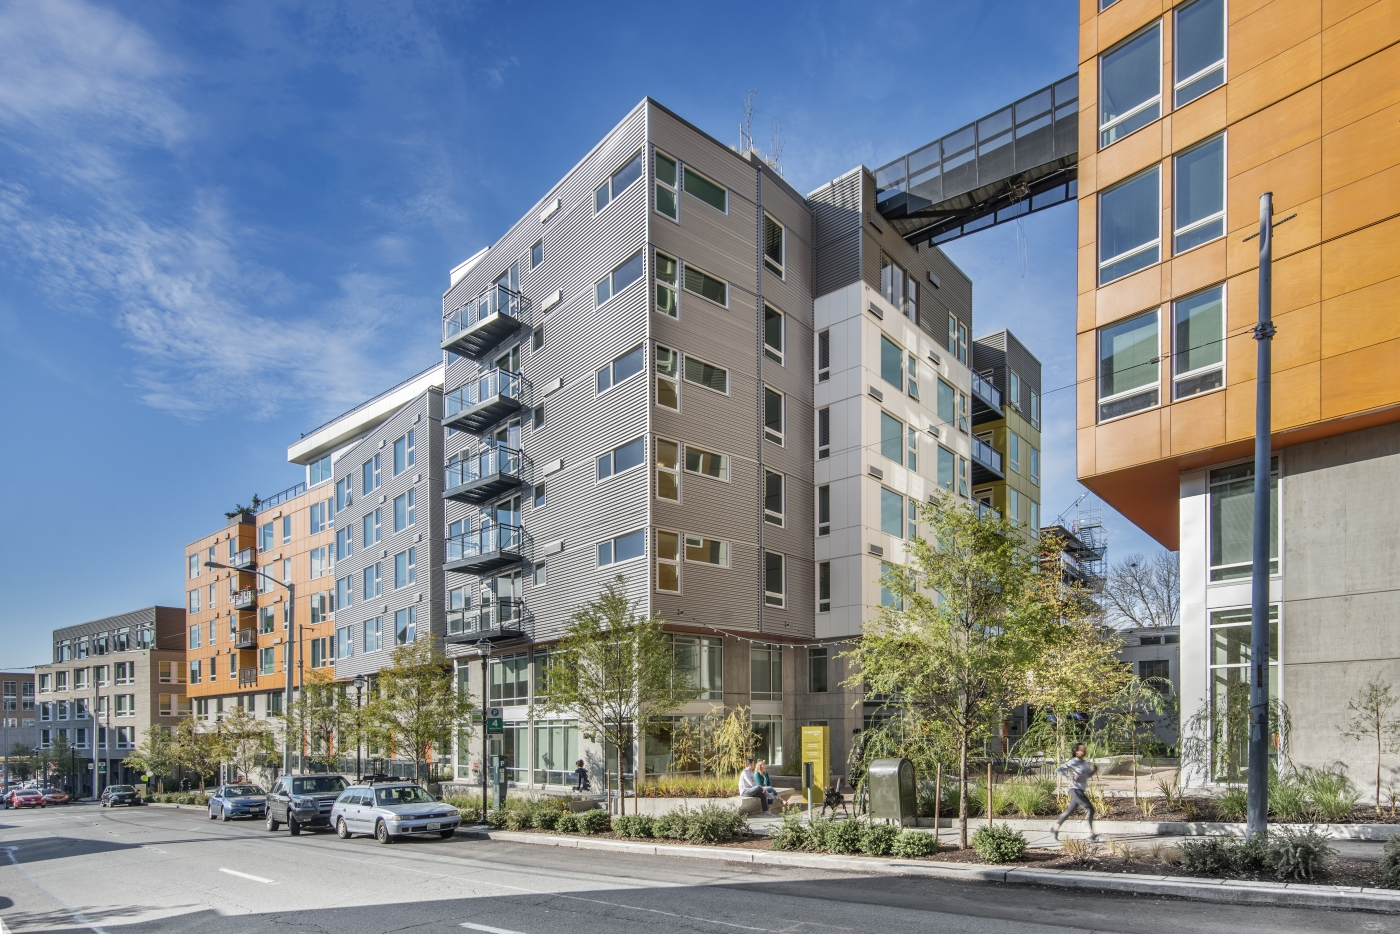 Seattle local business news and data for Multi family living